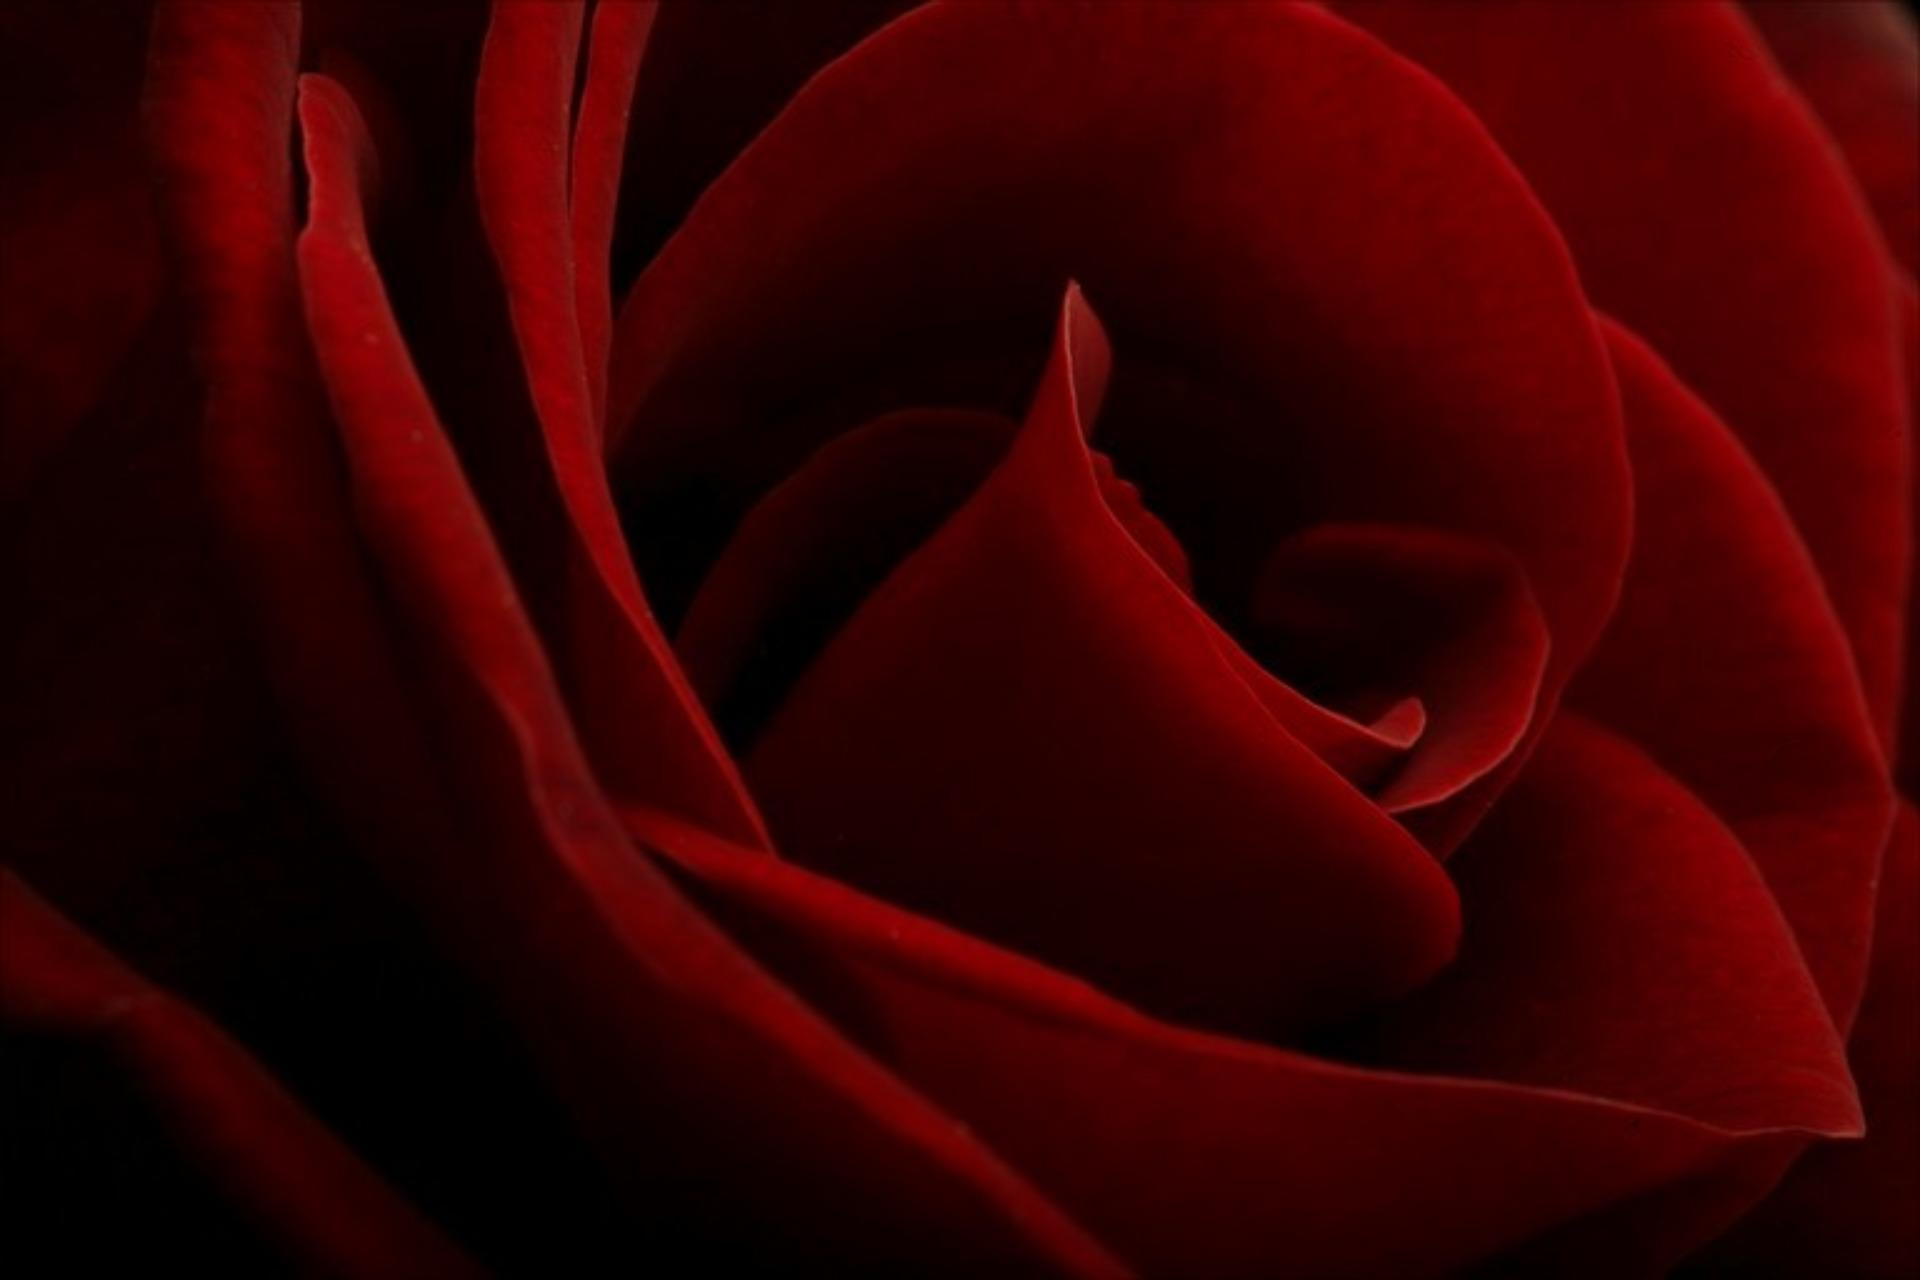 red and black love wallpapers - photo #22